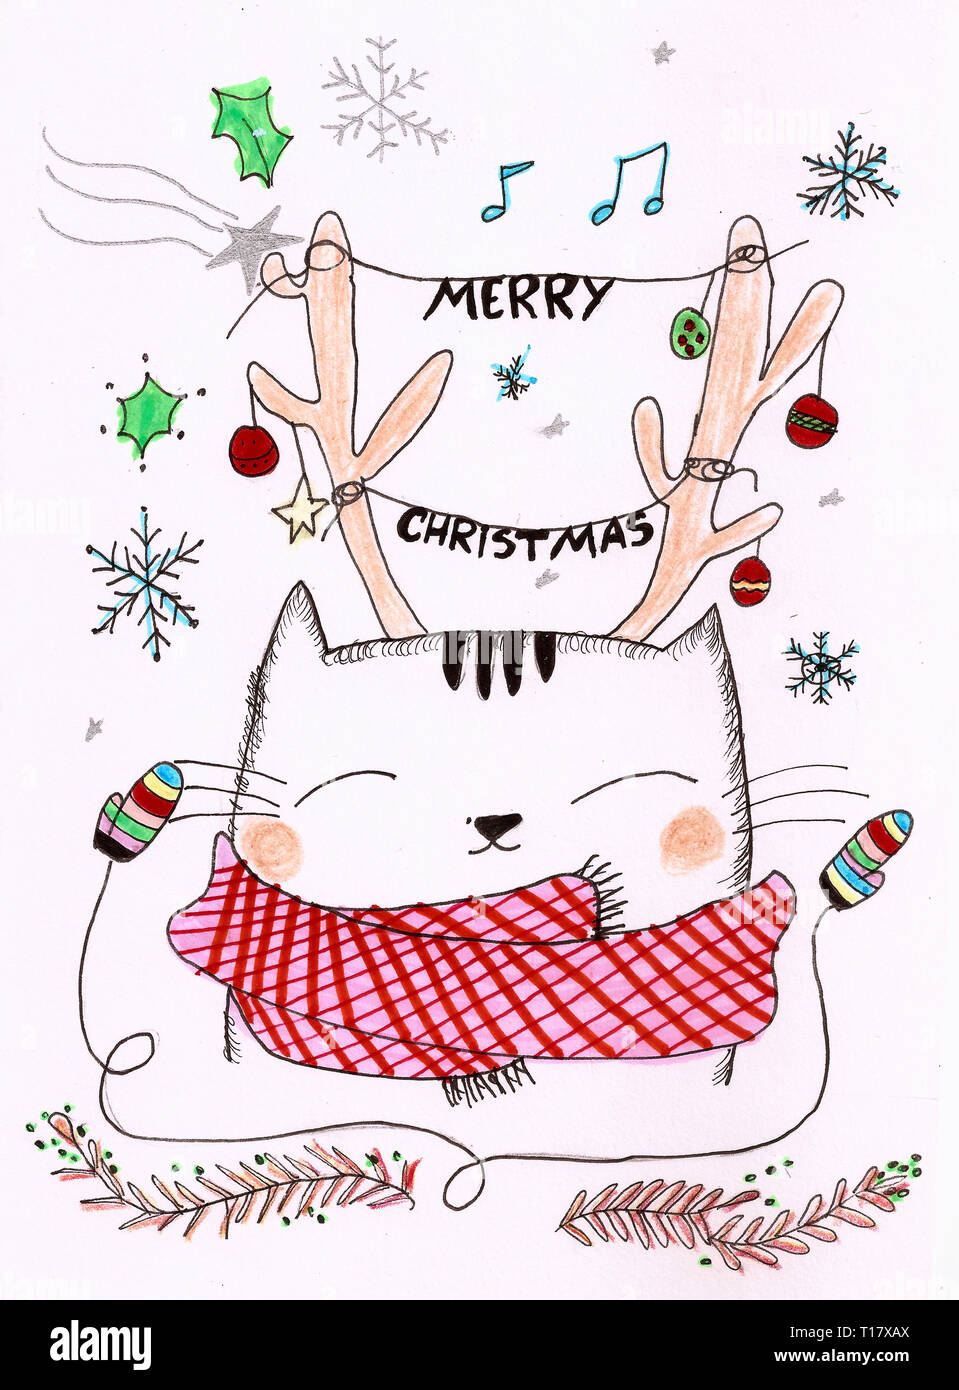 cute cat with a reindeer horn wearing a scarf on a Christmas scenario wishing a merry Christmas - Stock Image